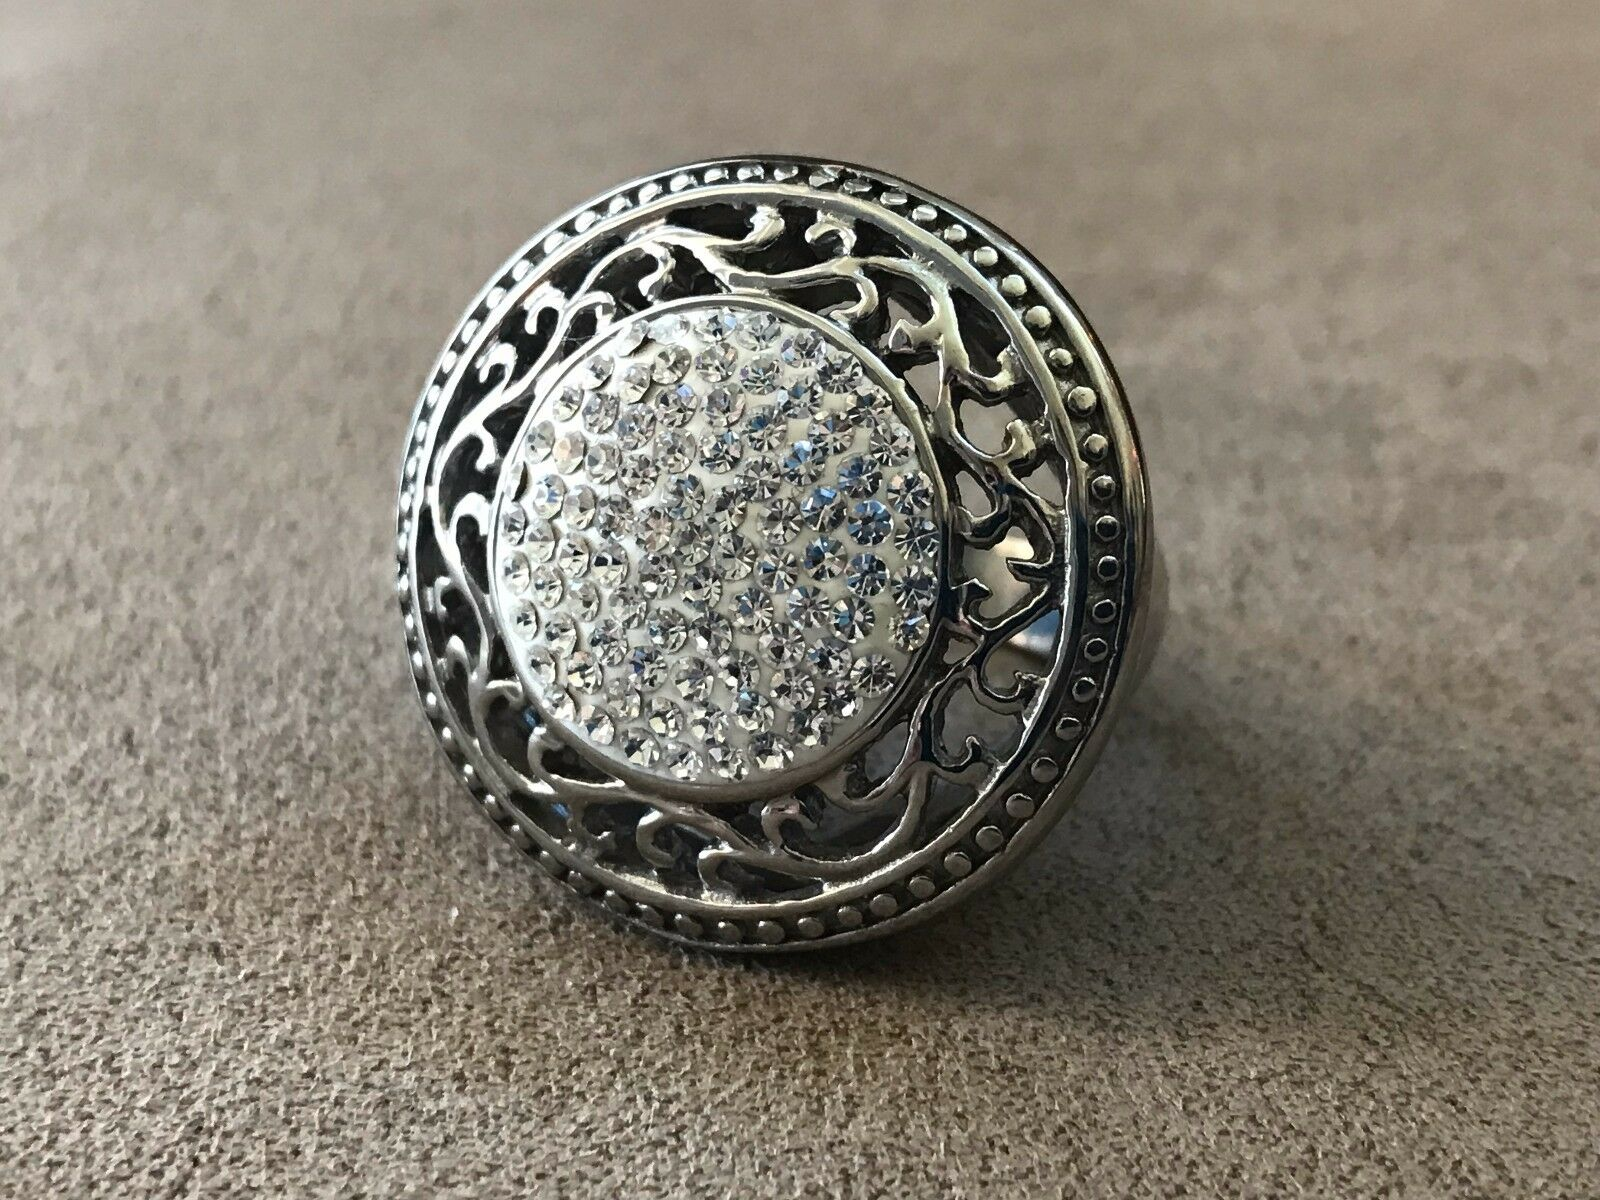 PJM Filigree Stainless Steel Ring SIze 10